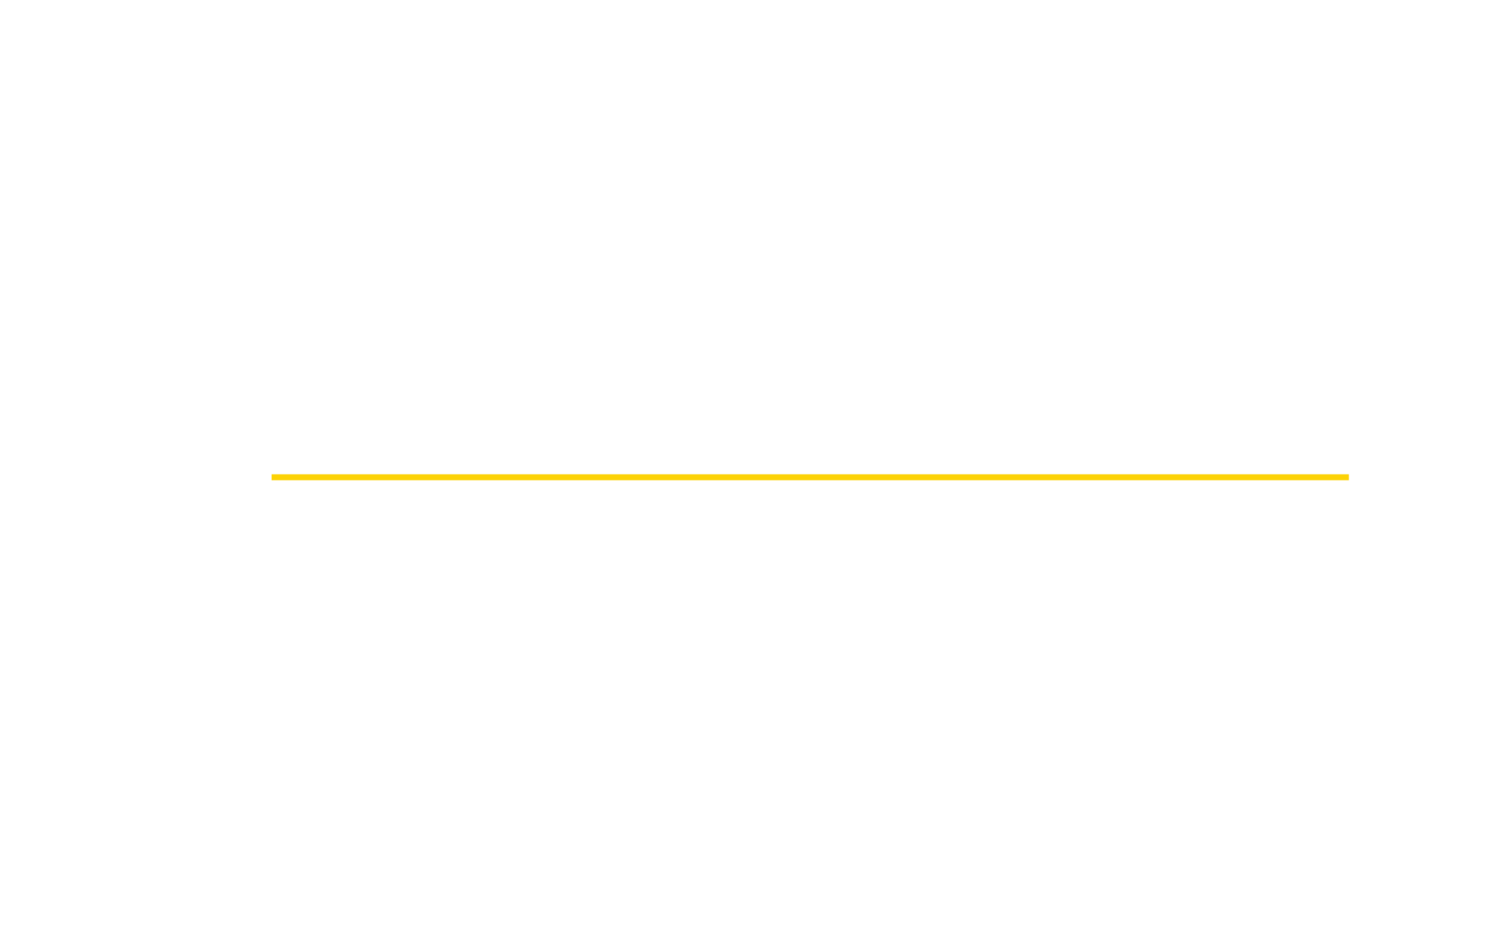 Awaken the Future